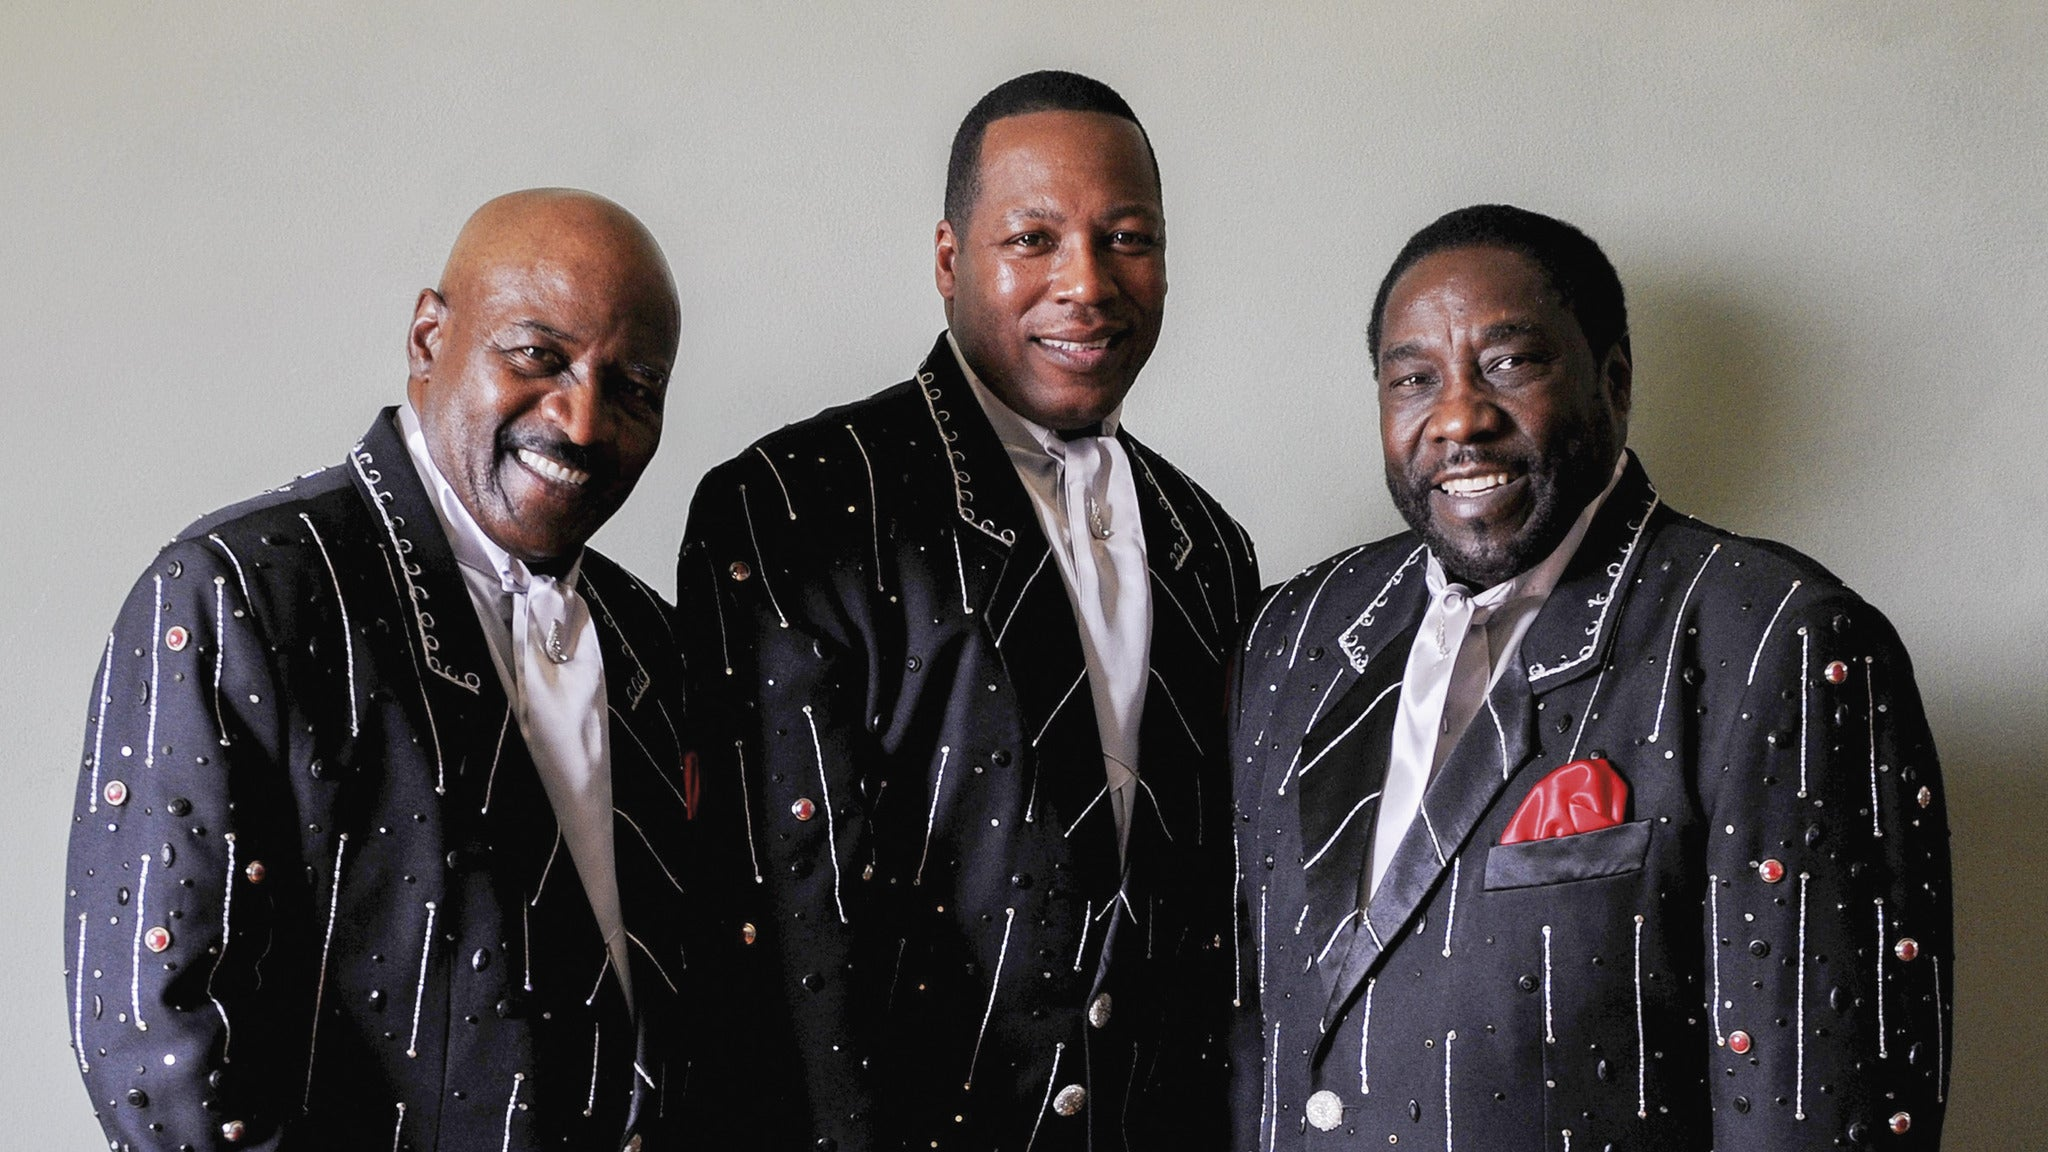 An Evening With The O'Jays at The Venue at Horseshoe Casino